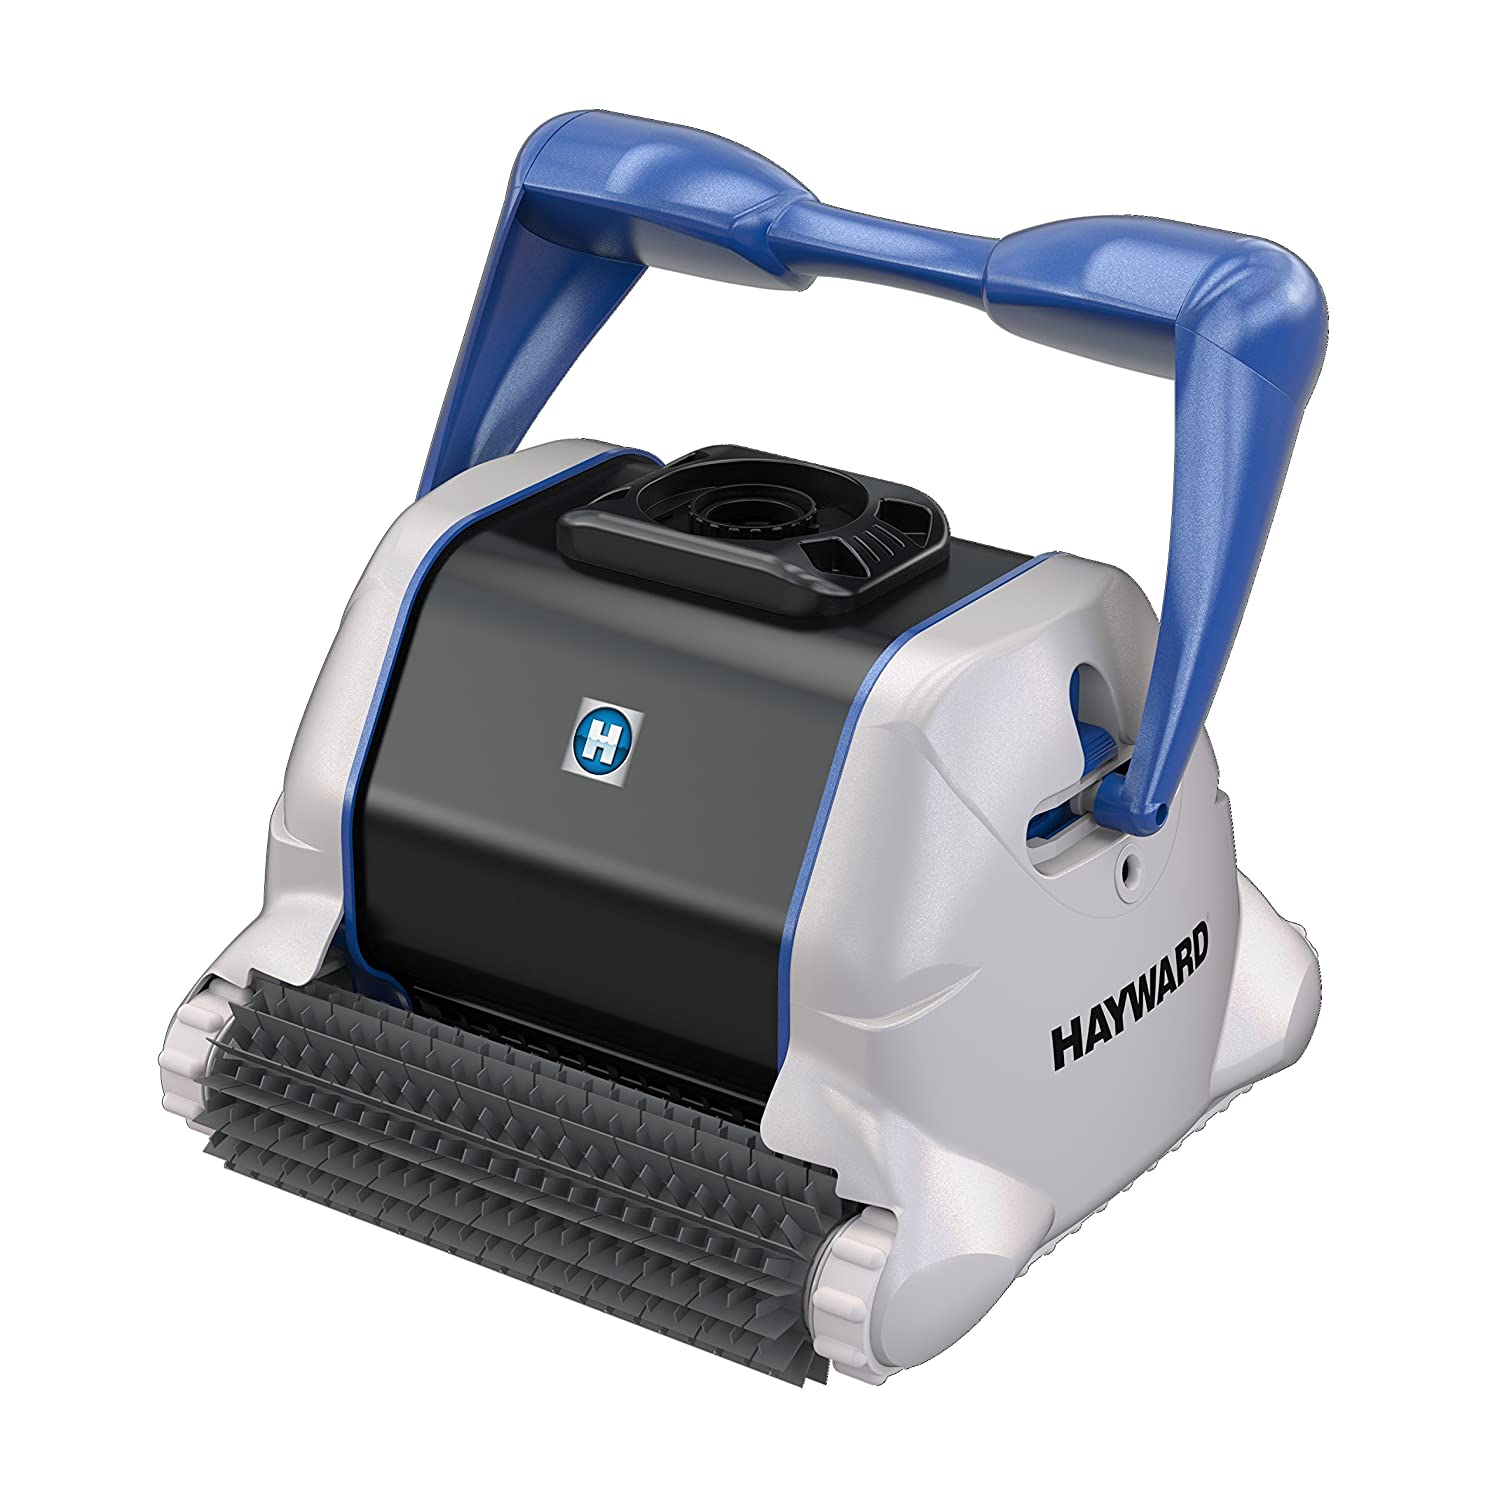 Hayward RC9955CUB TigerShark Best Robotic Pool Vacuum